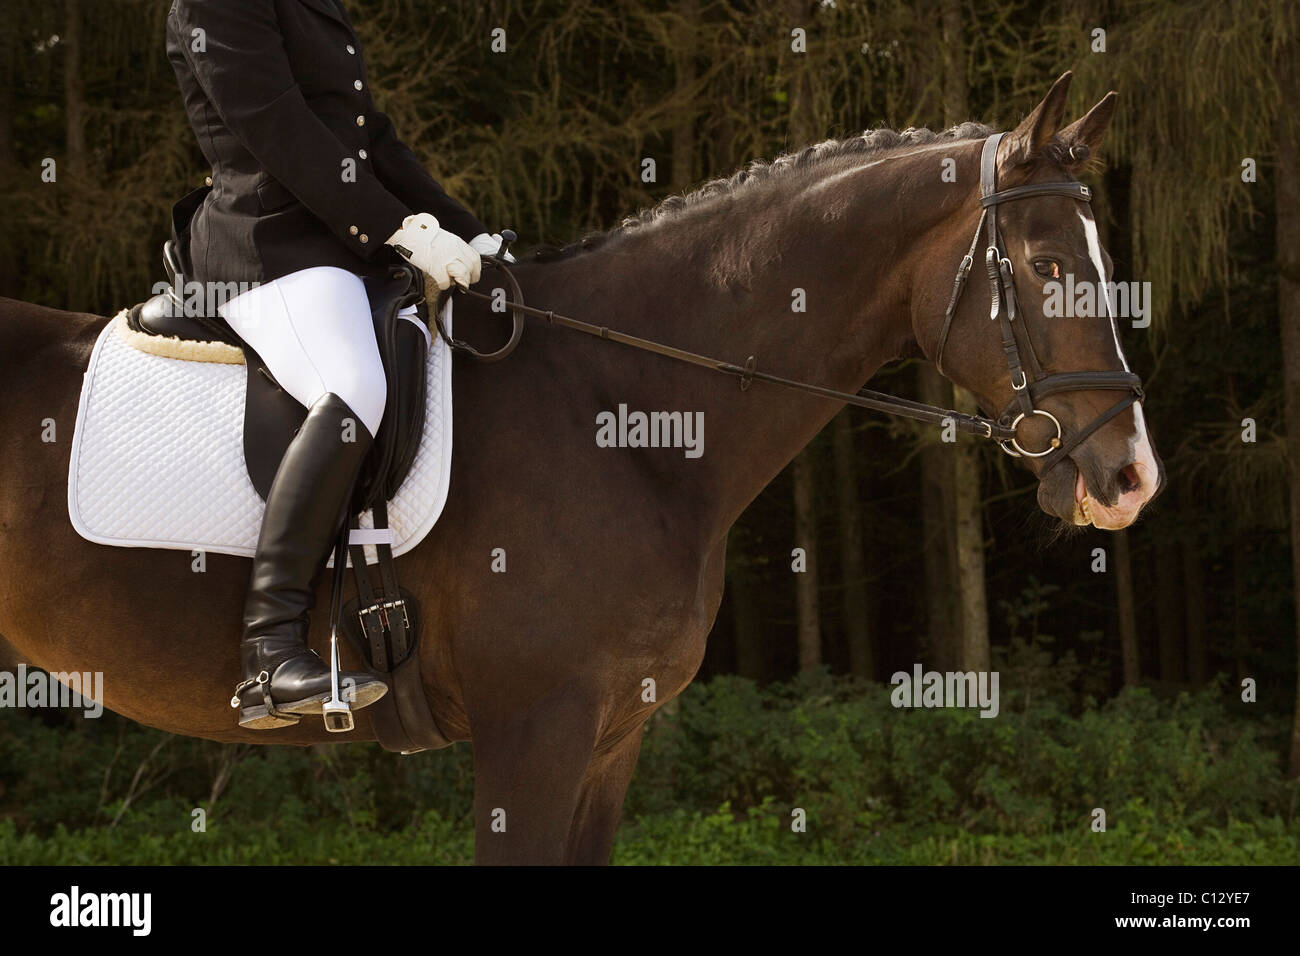 Side View Of Dressage Horse With Rider Stock Photo Alamy